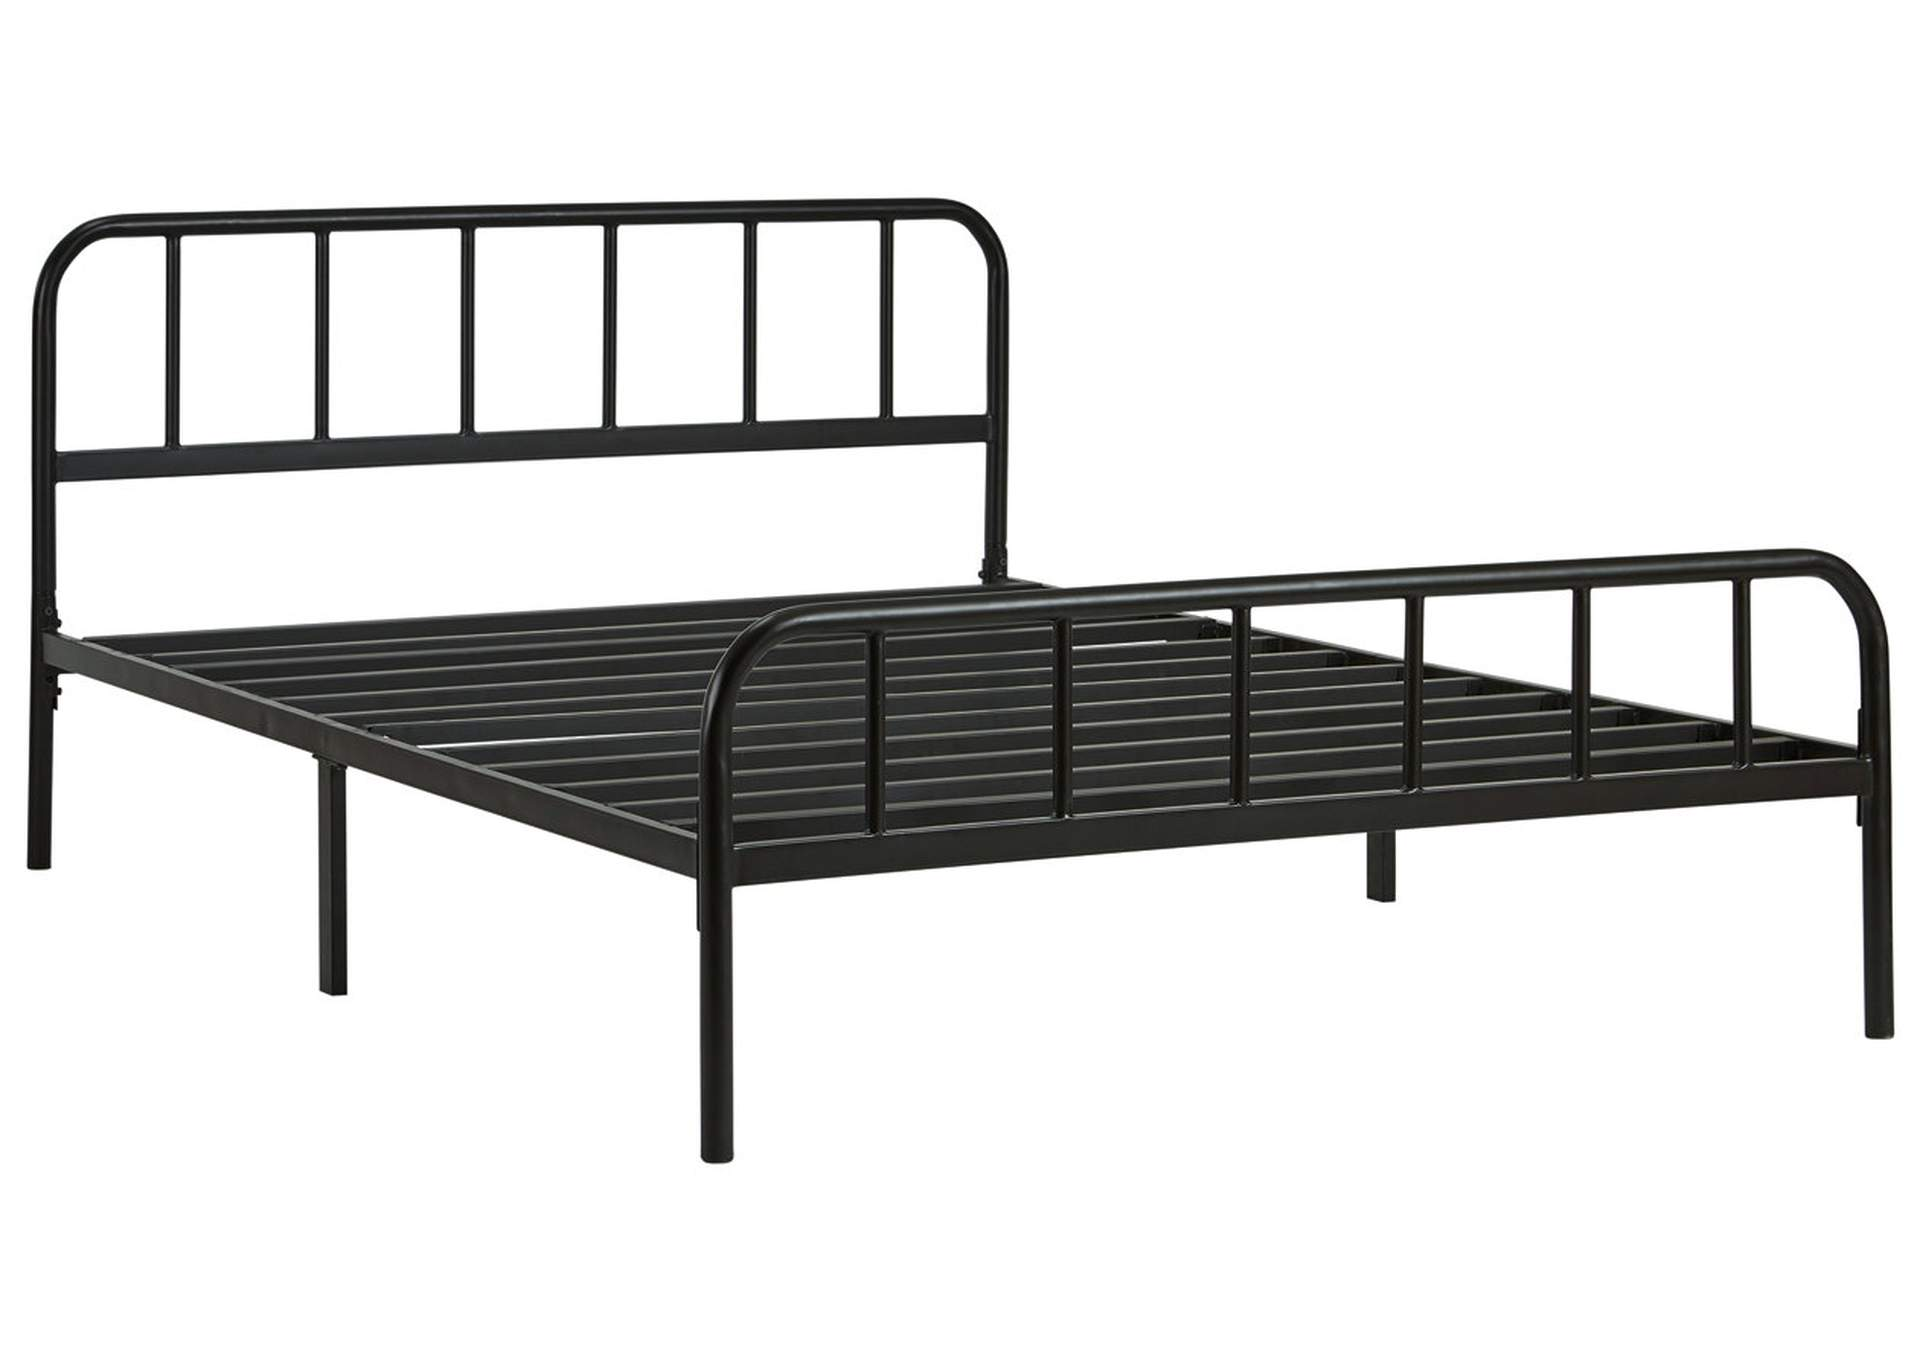 Trentlore Full Platform Bed,Signature Design By Ashley